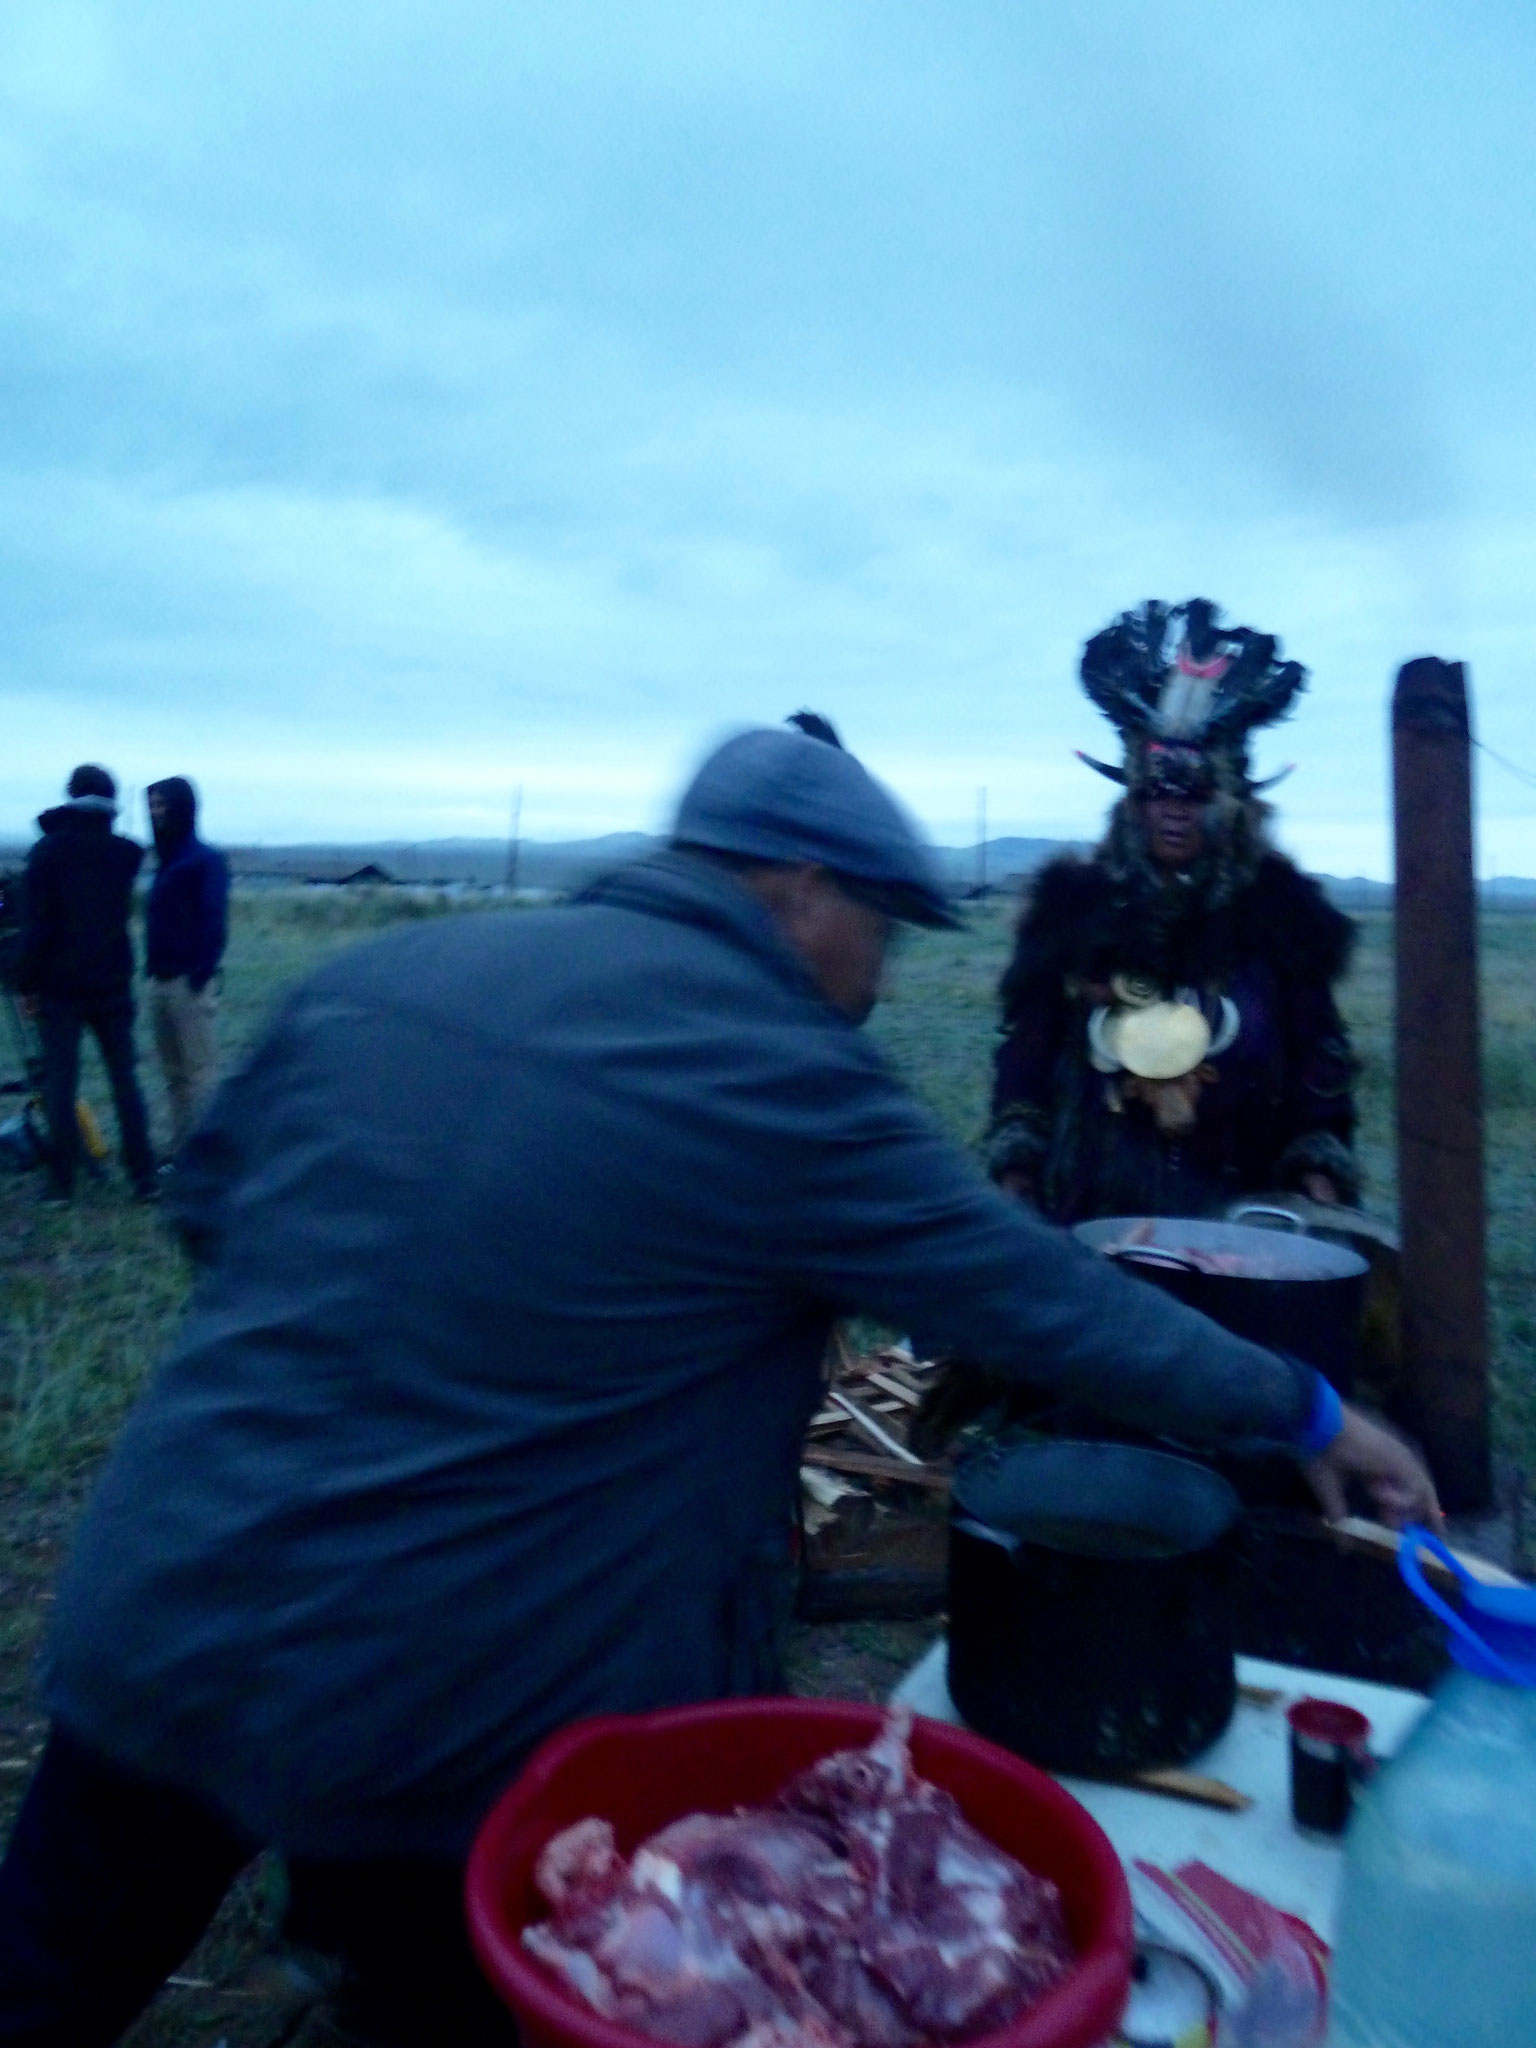 The great ceremony 'Honoring 30.000 years of Tuvan Shamanism'